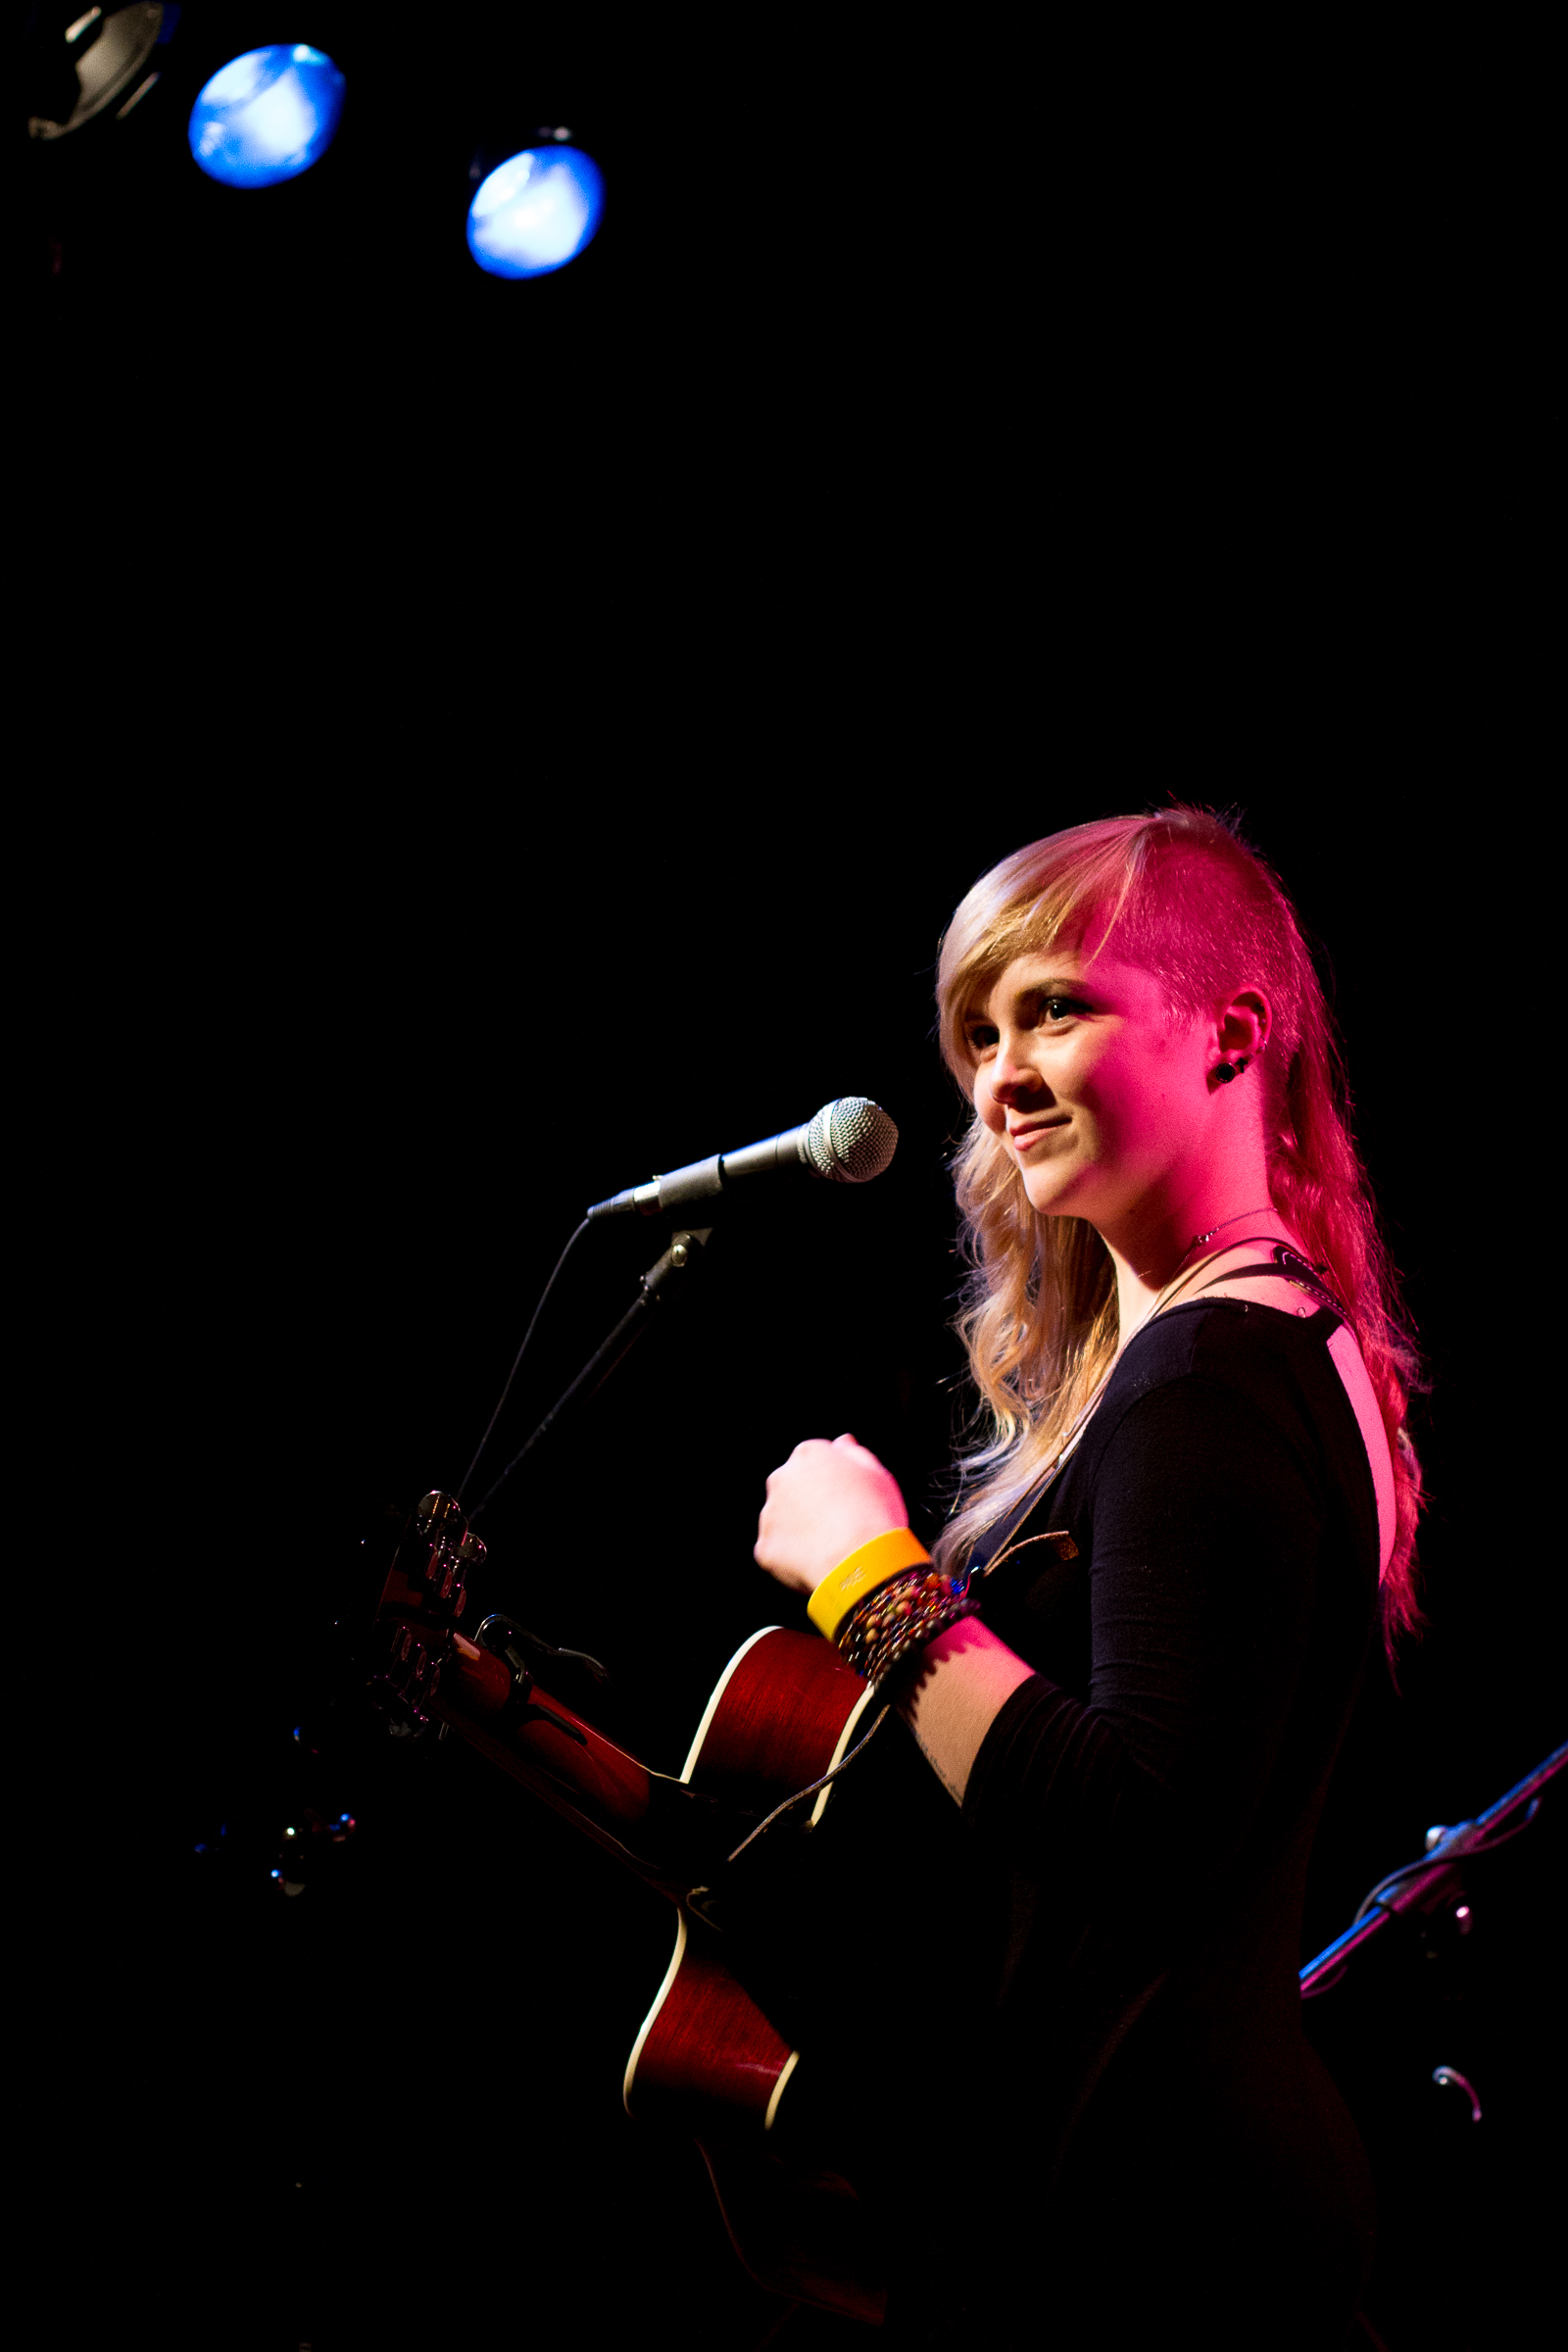 Julia Autumn Ford during a recent performance at The Desultory Theatre Club